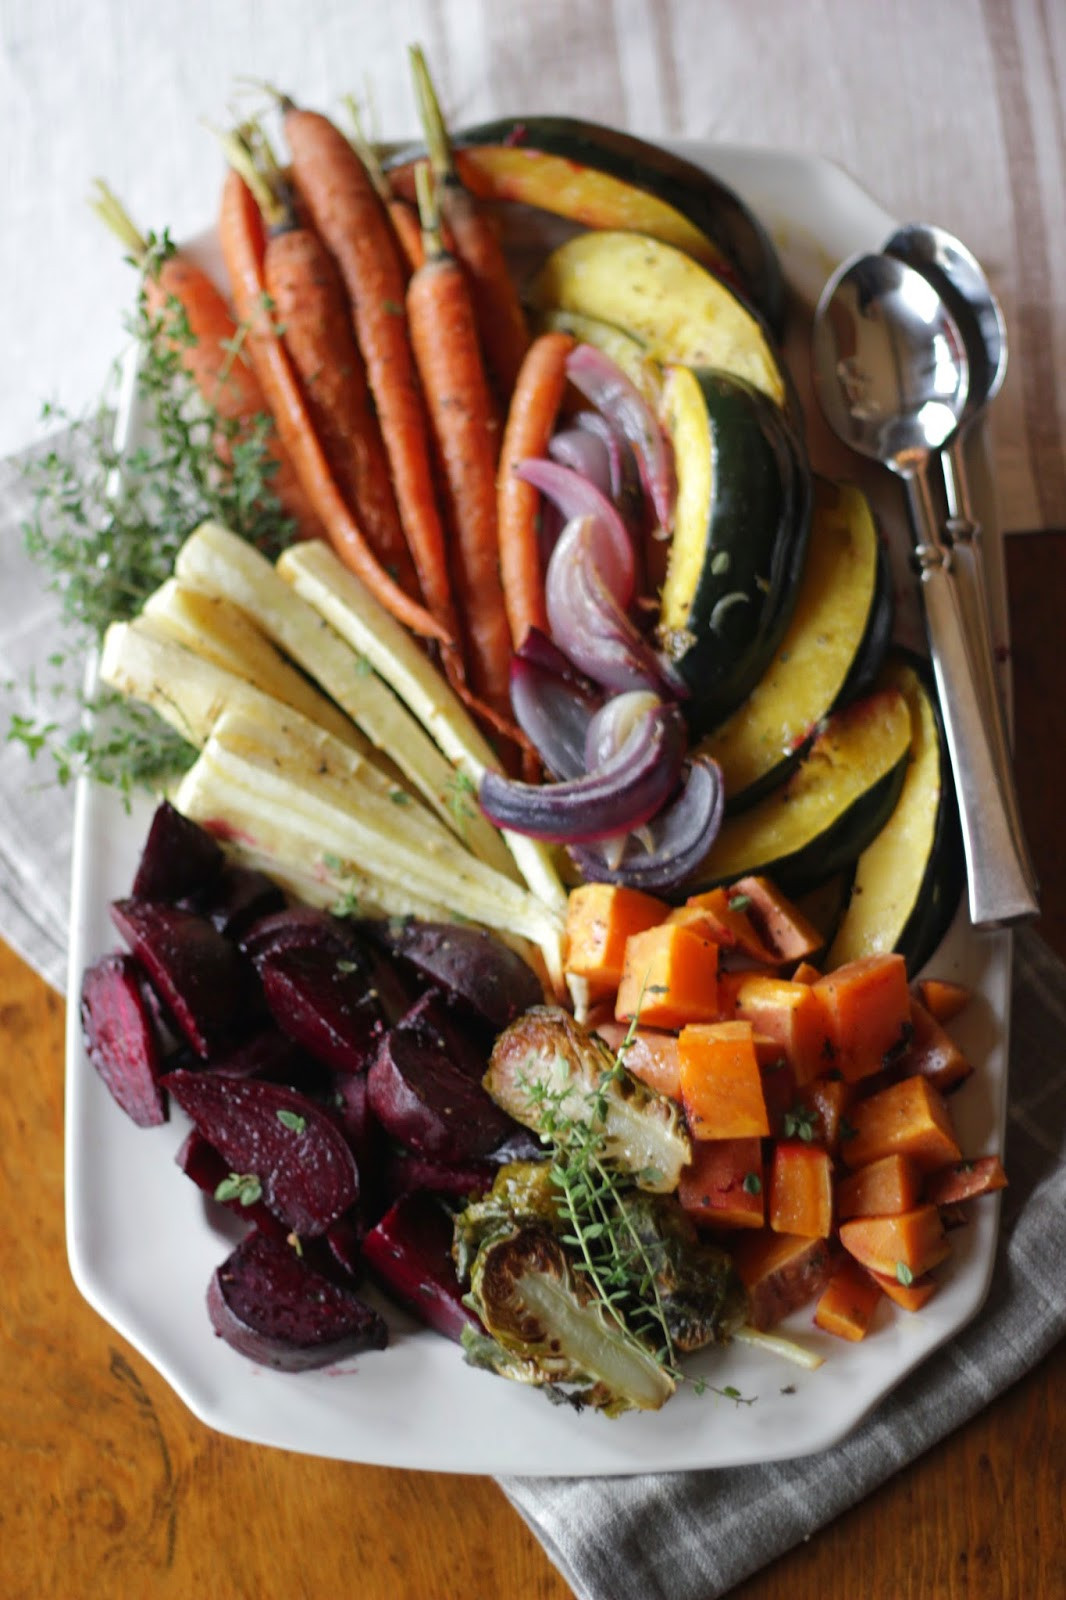 Roasted Vegetables For Thanksgiving  Jenny Steffens Hobick Roasted Root Ve able Platter with